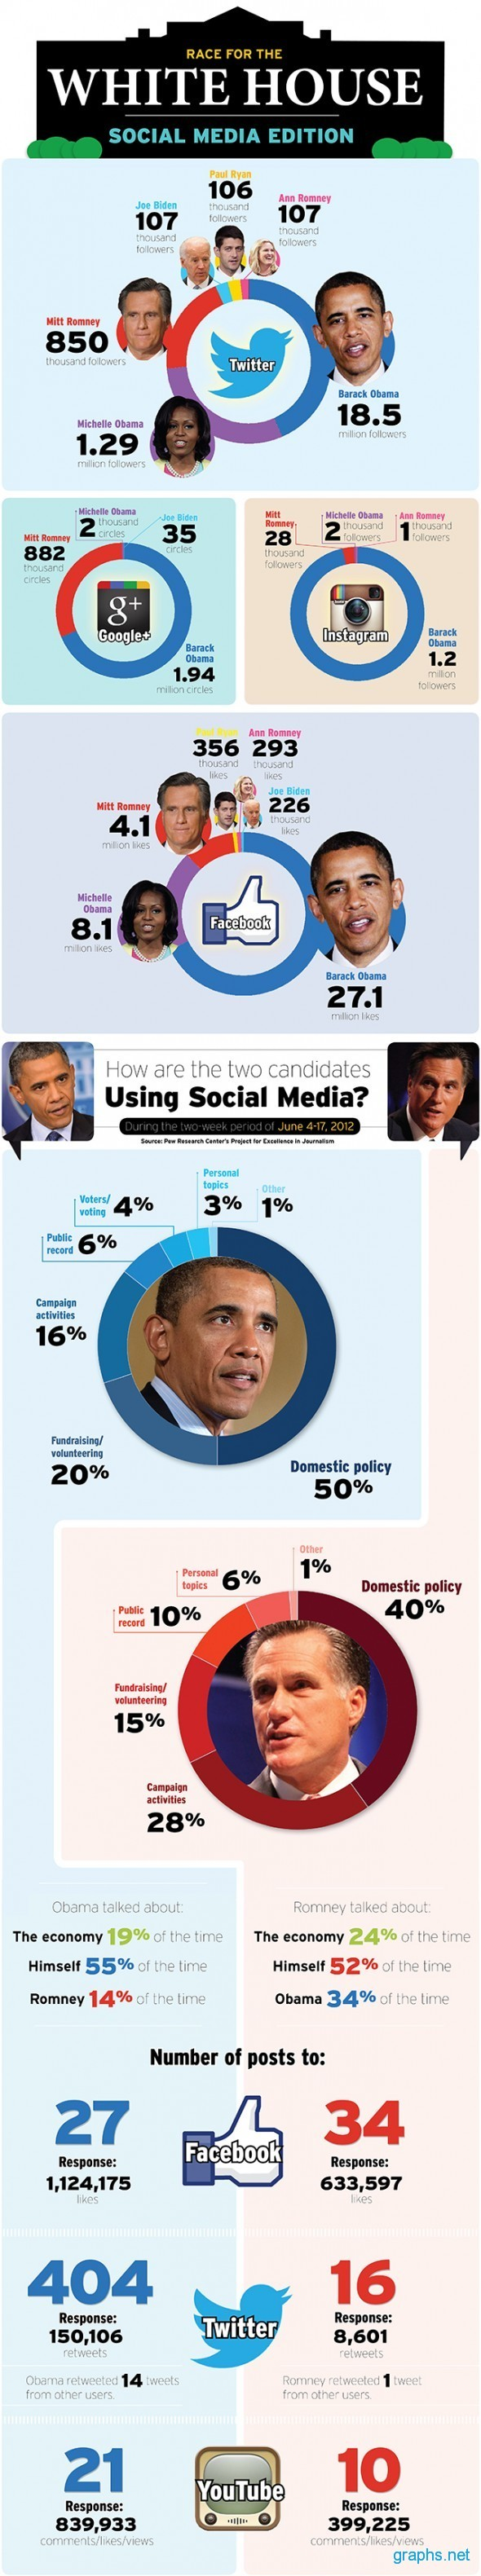 Race for White House Social Media